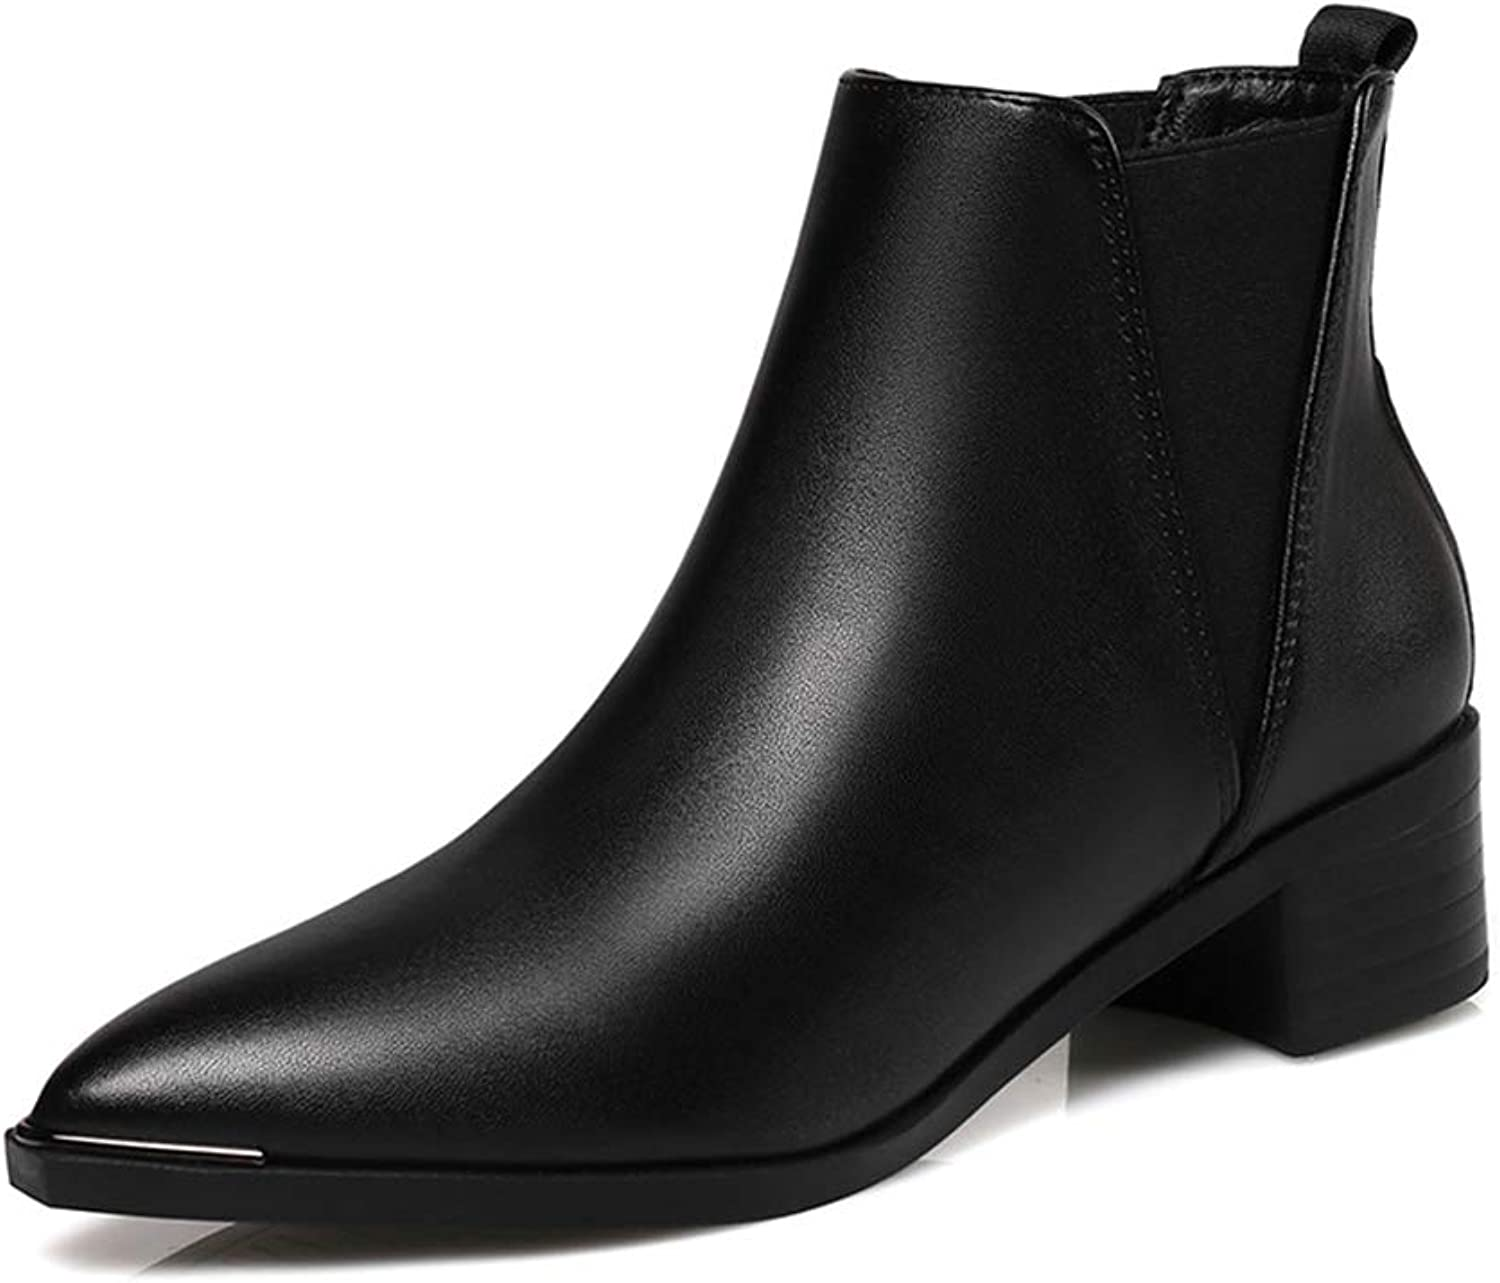 Topcloud Women's Ankle Boots Chelsea Boots Ankle Boots Leisure Boots